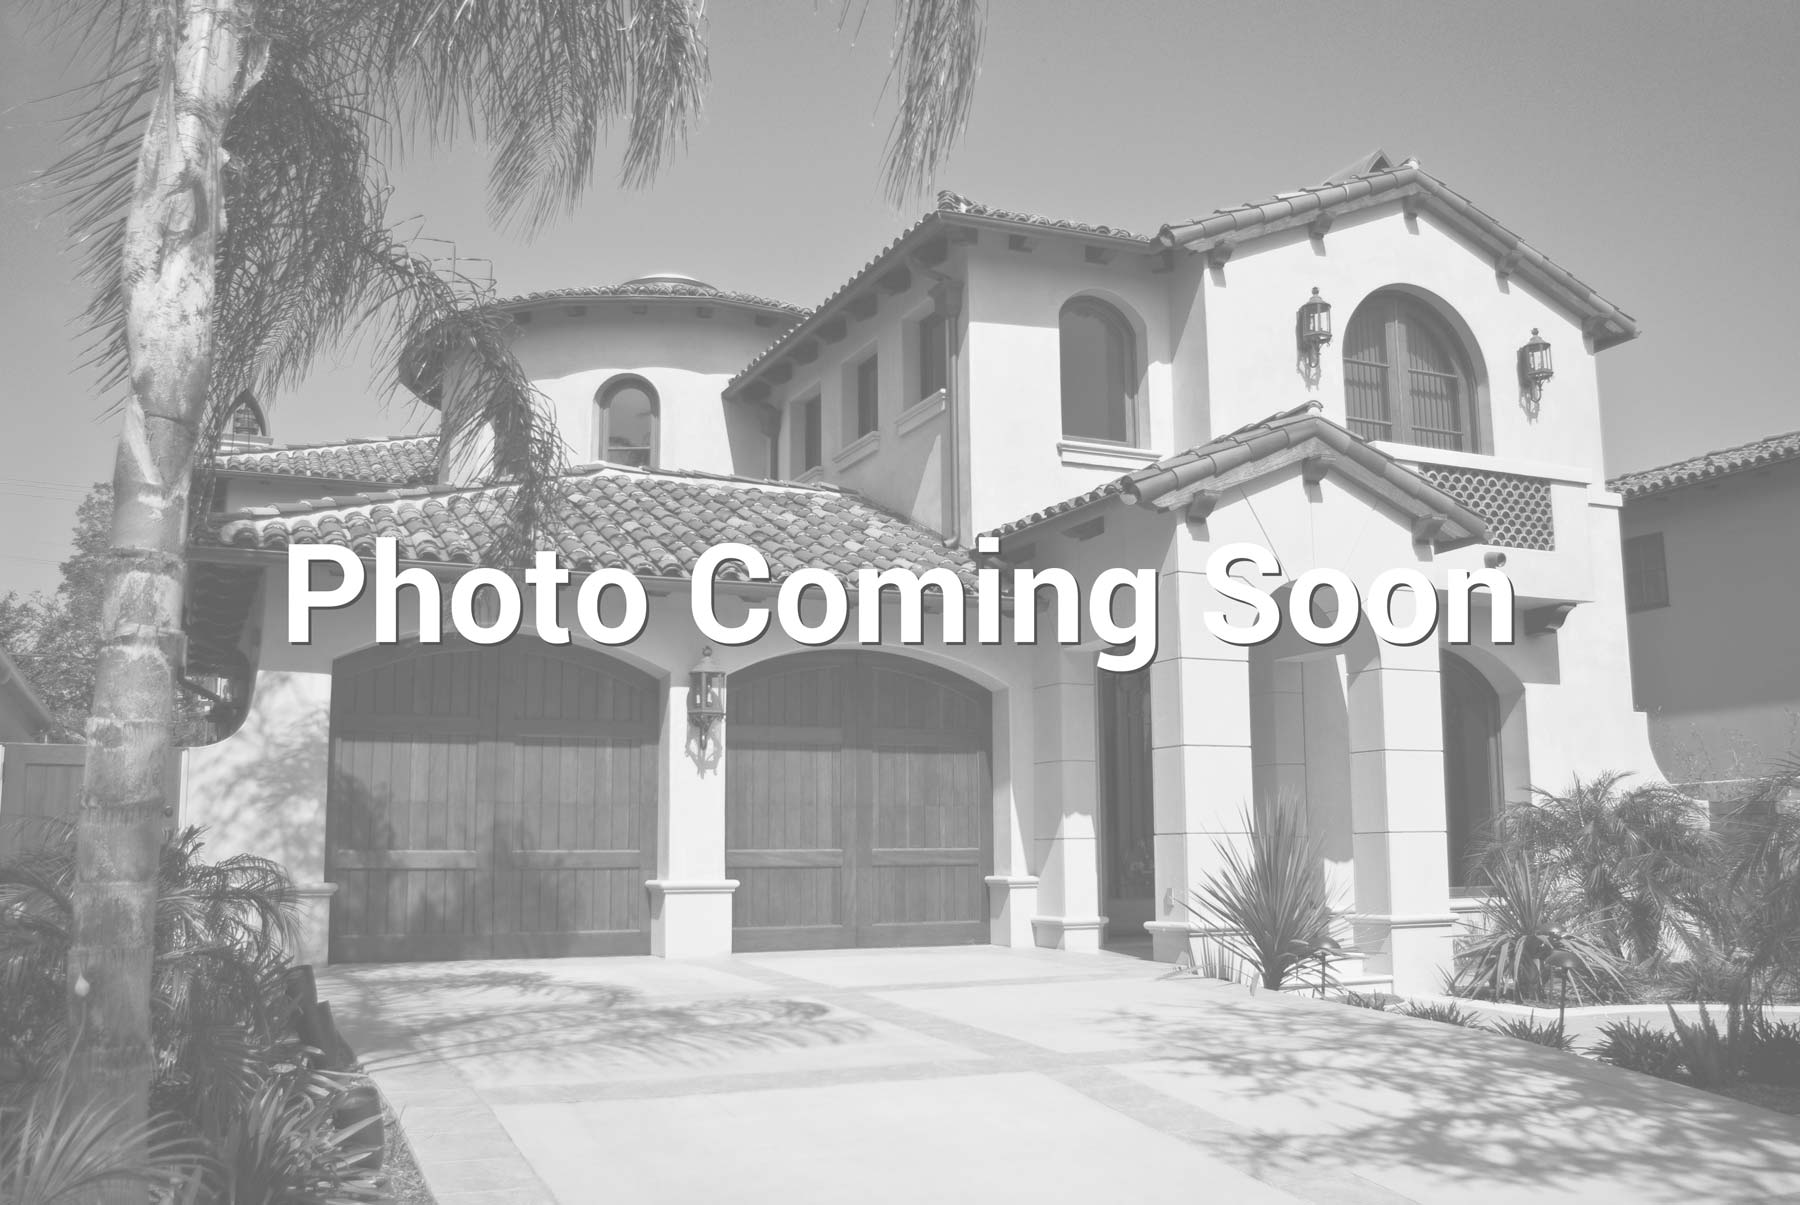 $689,900 - 3Br/2Ba -  for Sale in Country Homes (cnhm), Yorba Linda